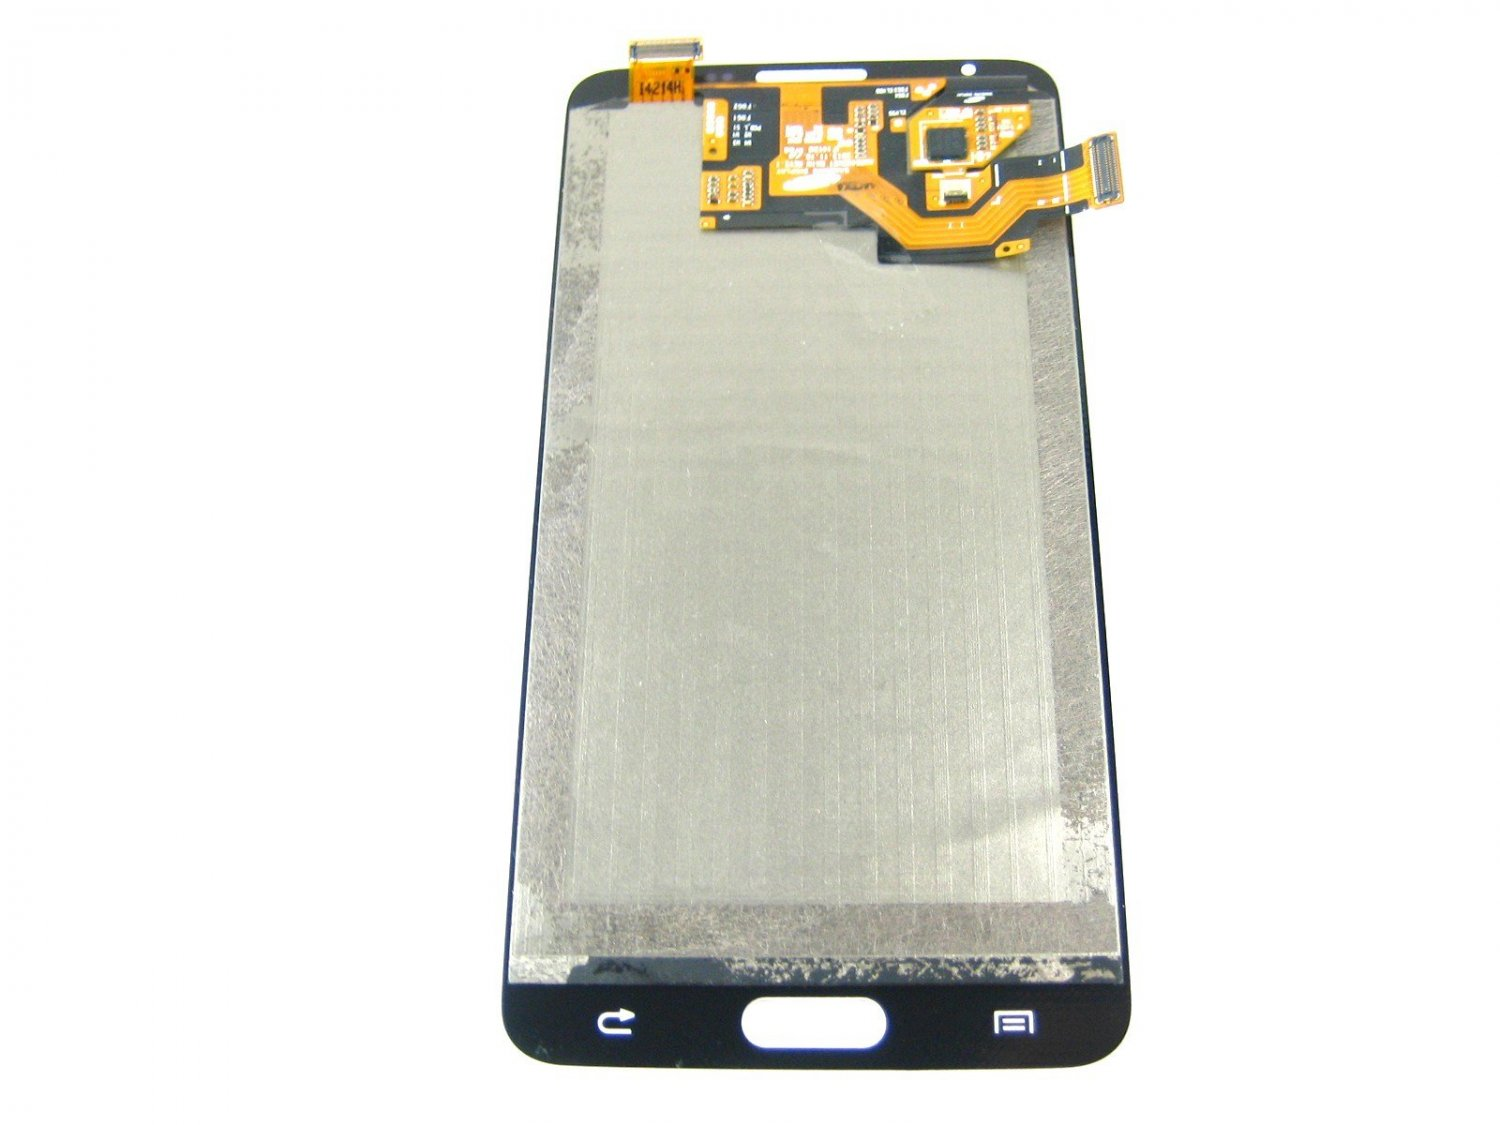 Full LCD Display+Touch Screen FOR Samsung Galaxy Note 3 Neo SM-N7505 n750~White 04206-MSLFN7505nnnnW